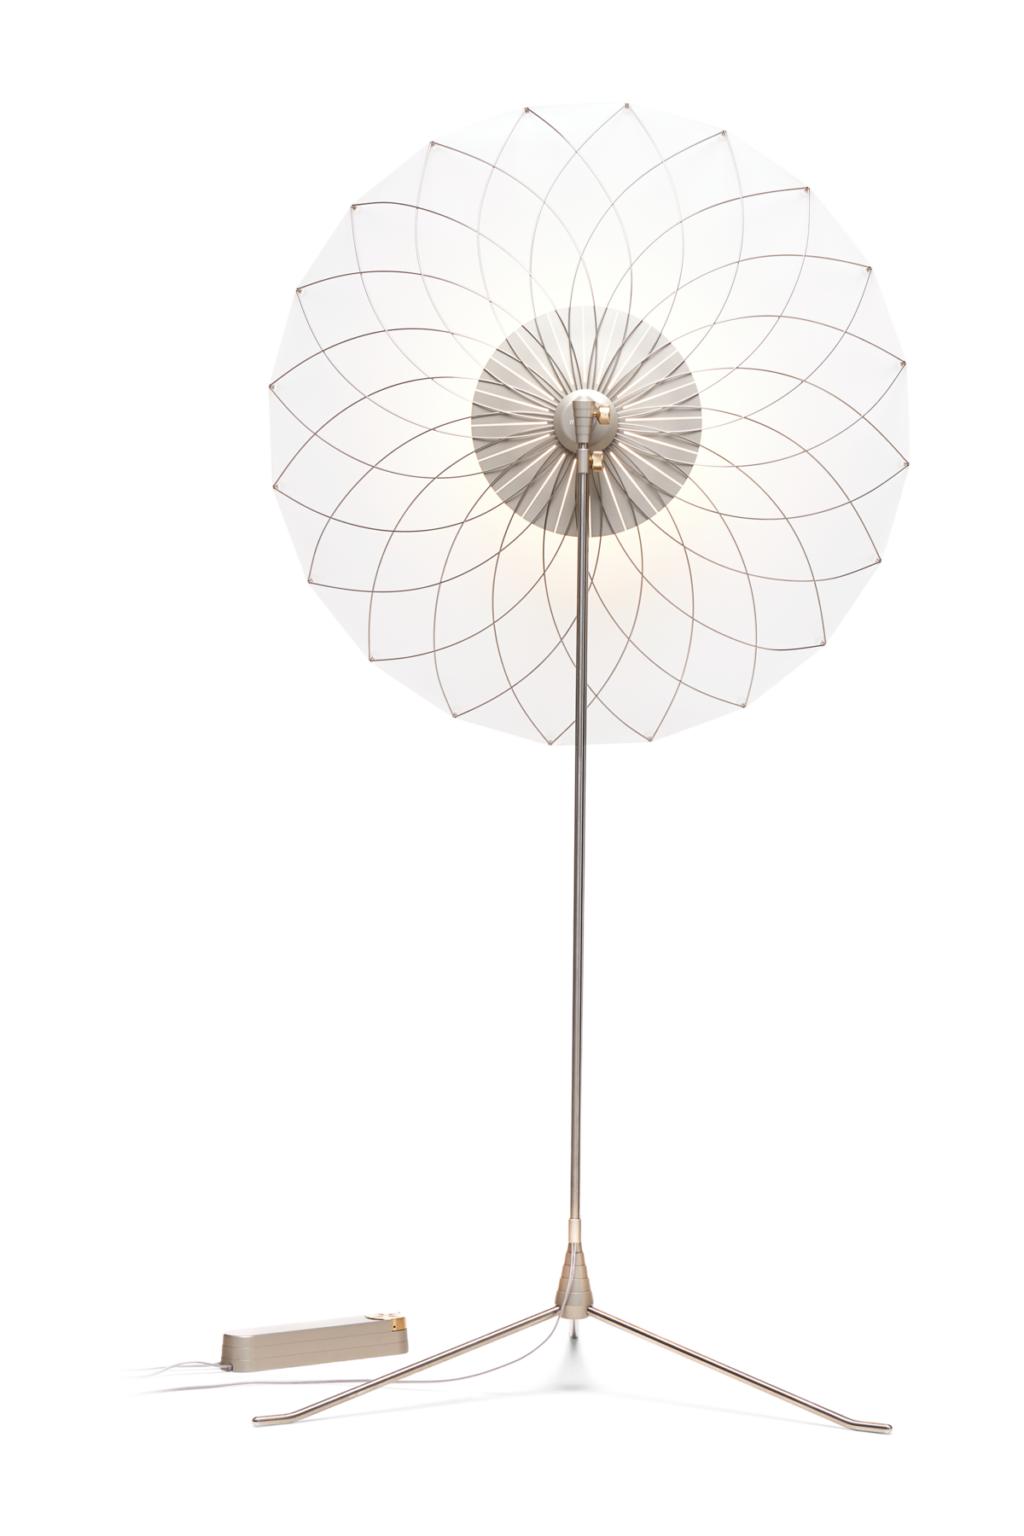 https://desidea.hu/wp-content/uploads/fly-images/160201/moooi-filigree-allolampa-1024x0.png